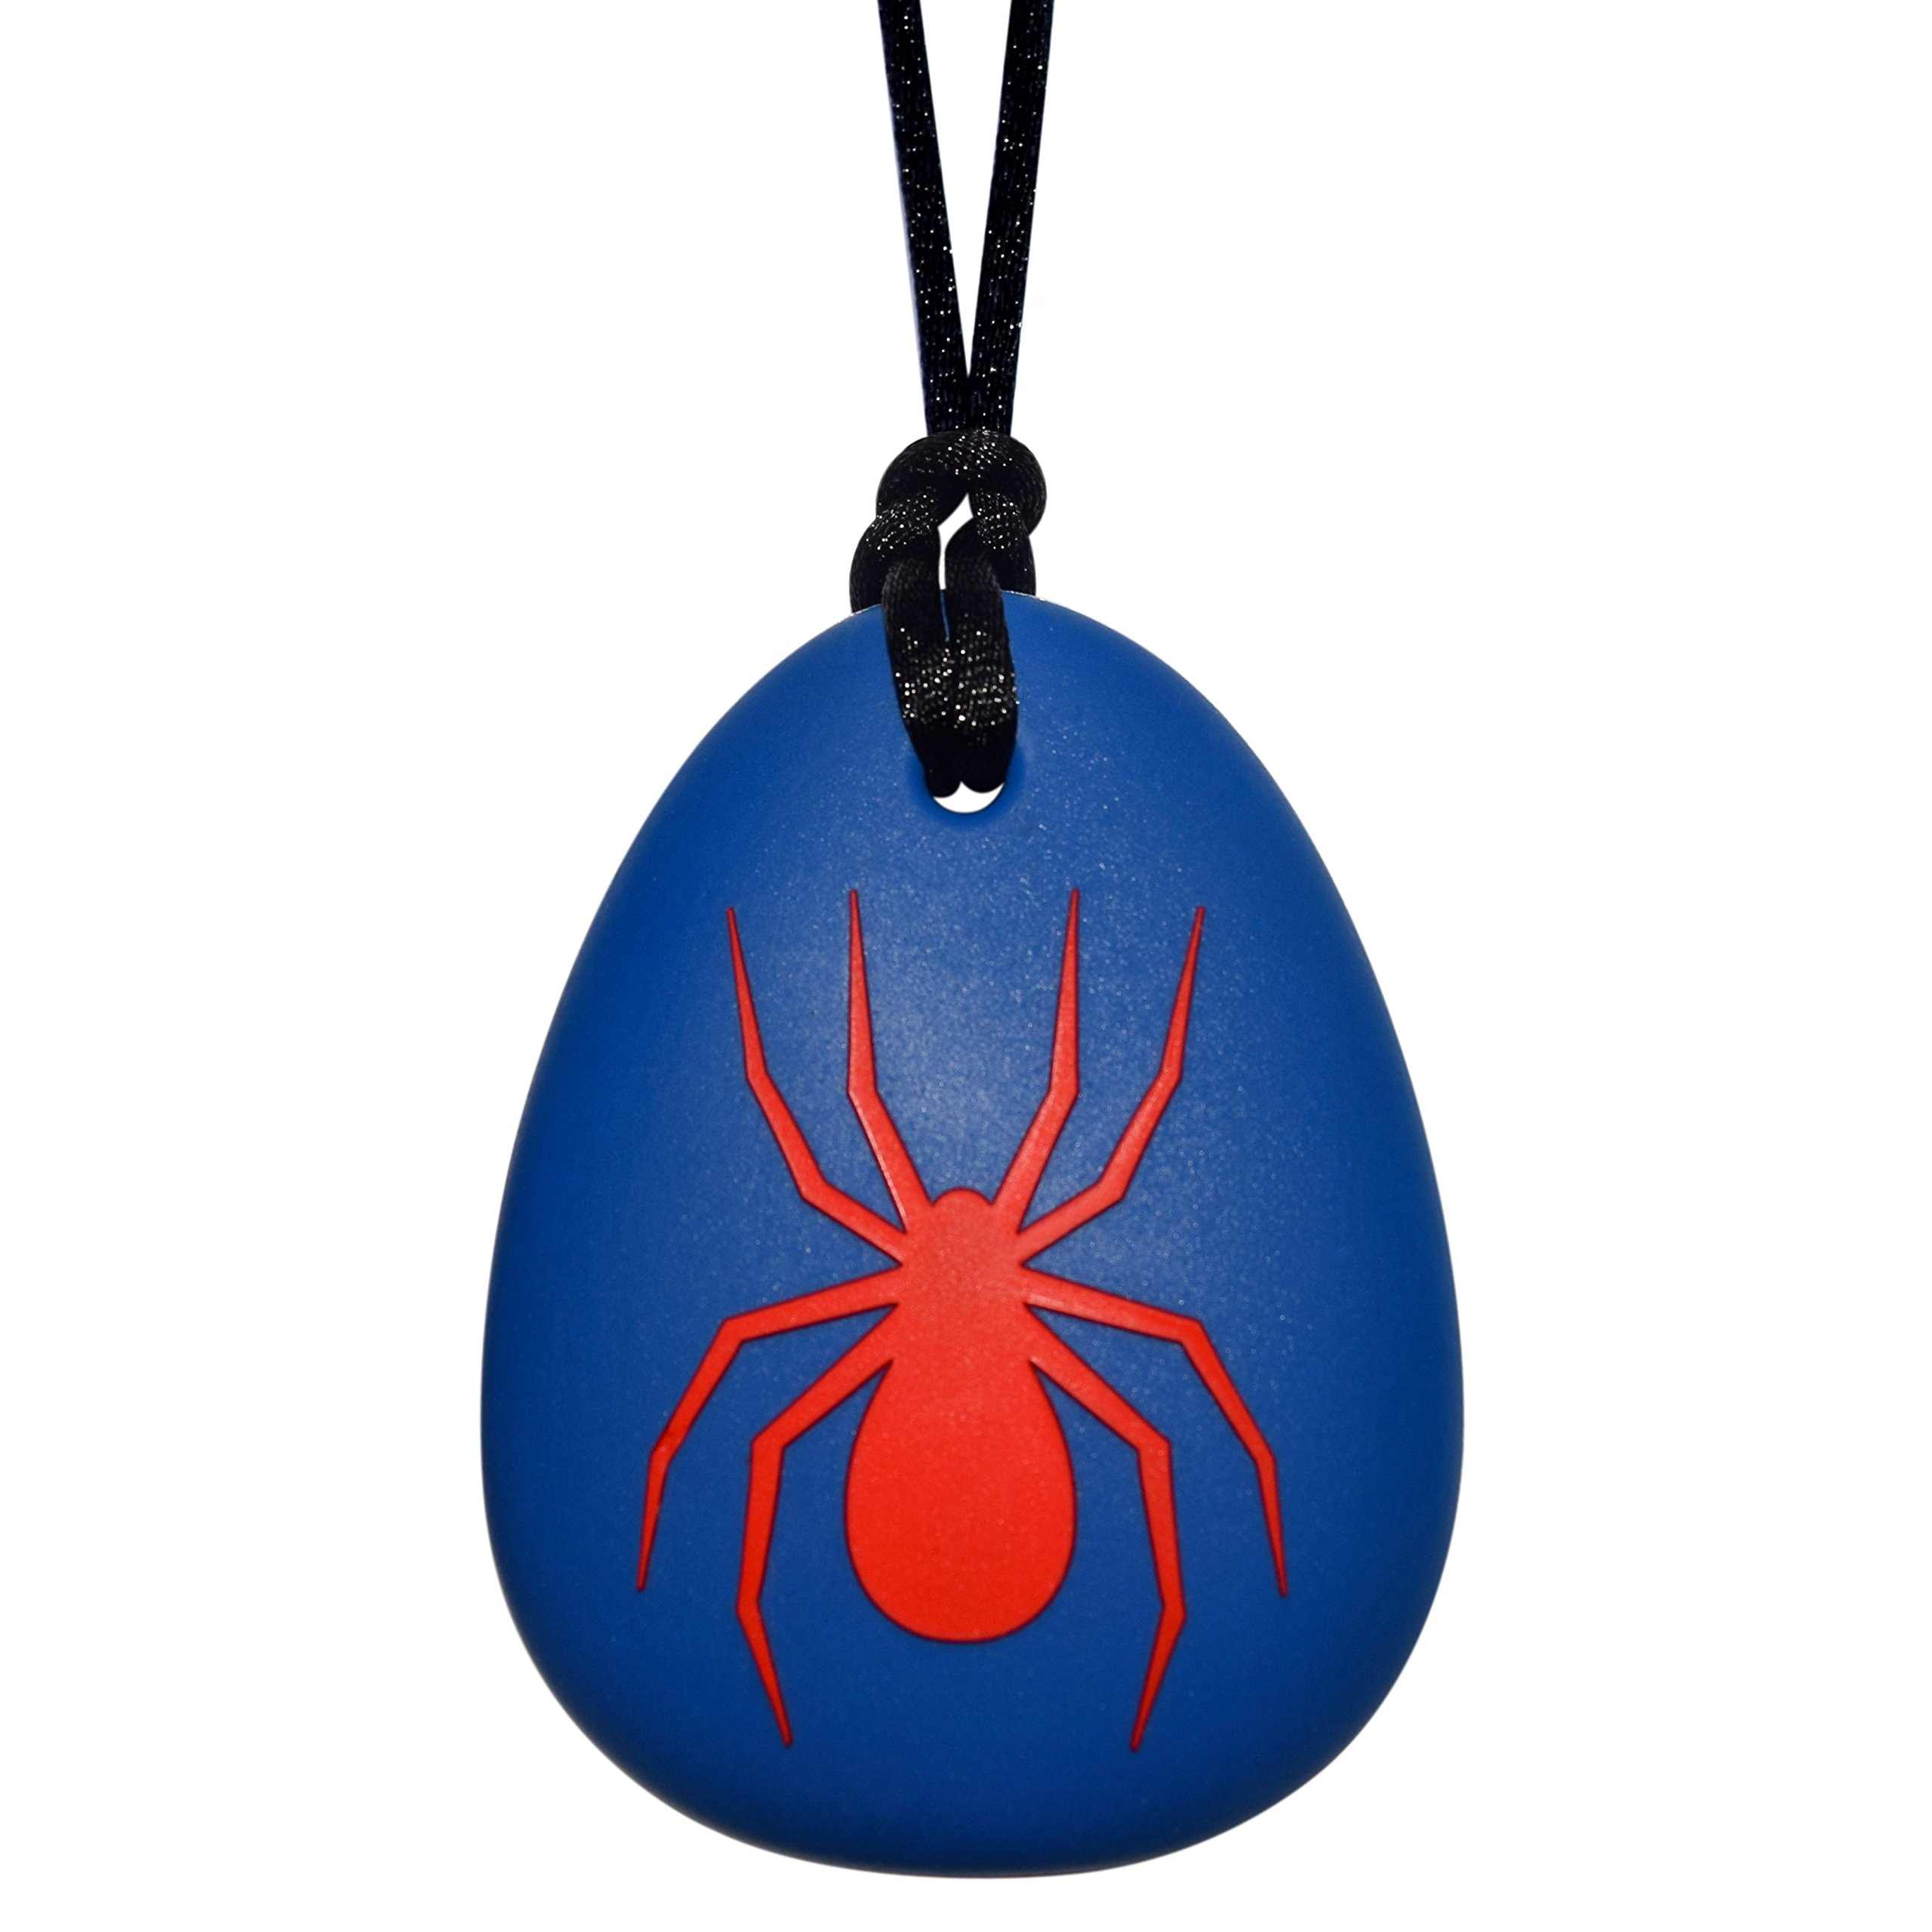 Spider Sensory Chewelry - Munchables Chew Necklace (Blue with Red)